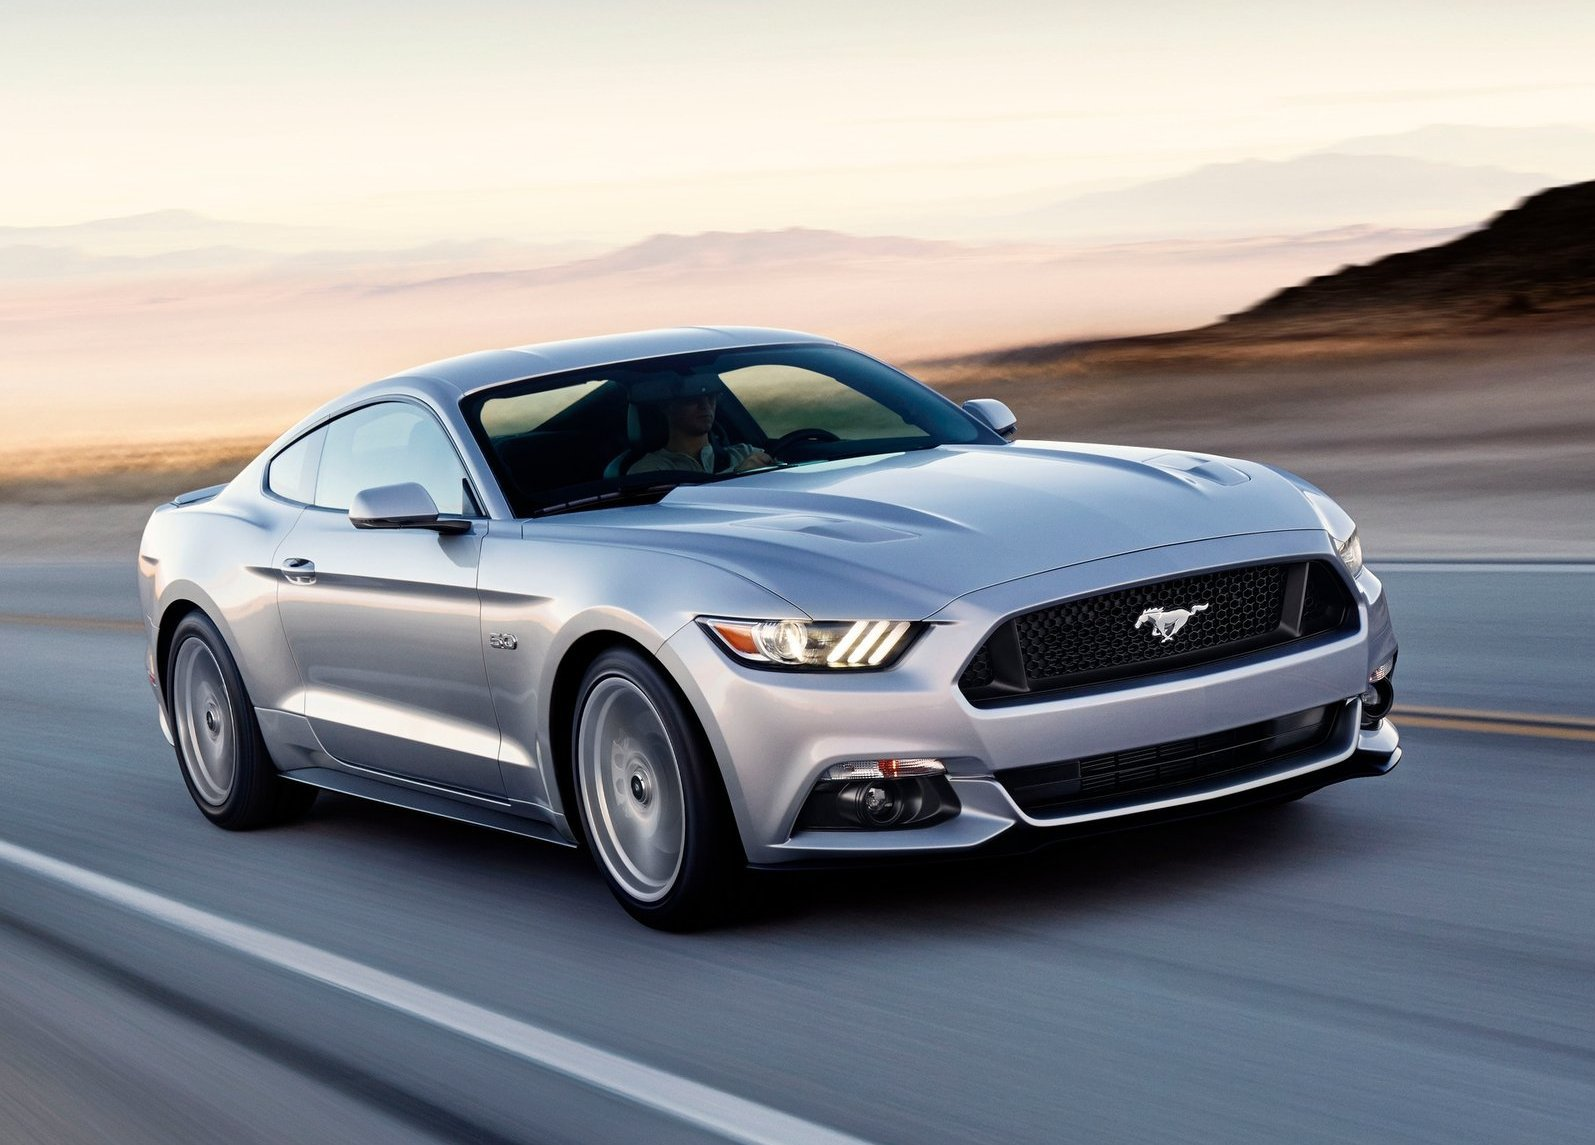 Ford-Mustang_GT_2015_1600x1200_wallpaper_02.jpg